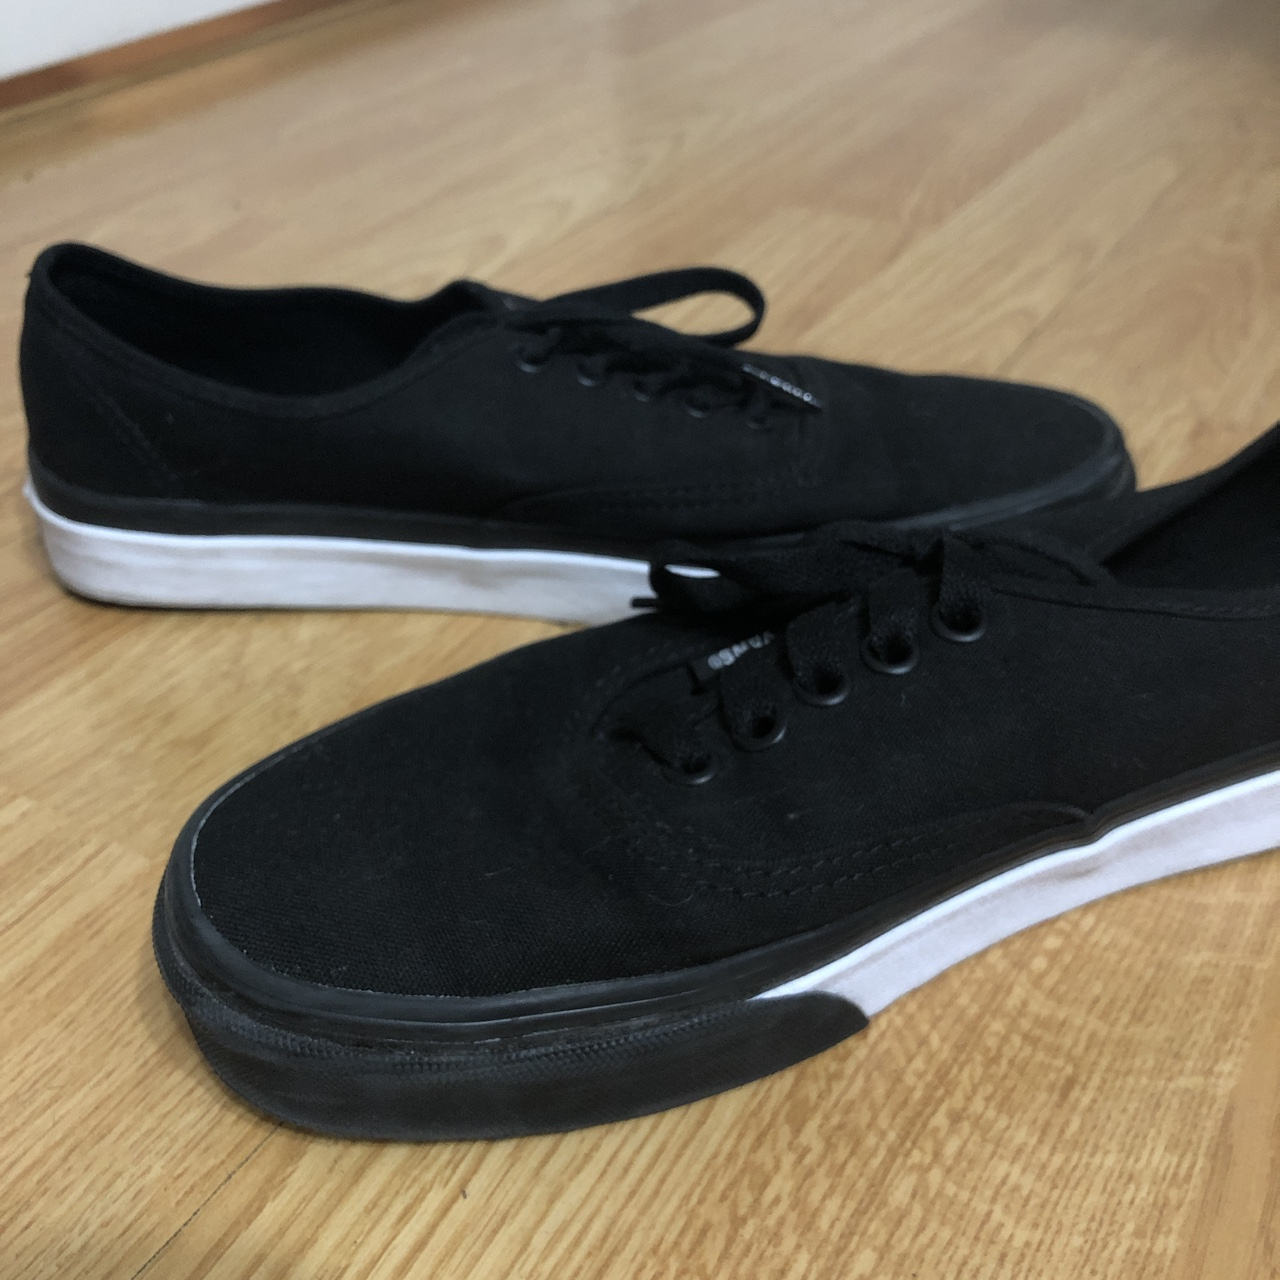 BLACK VANS with a black and white sole